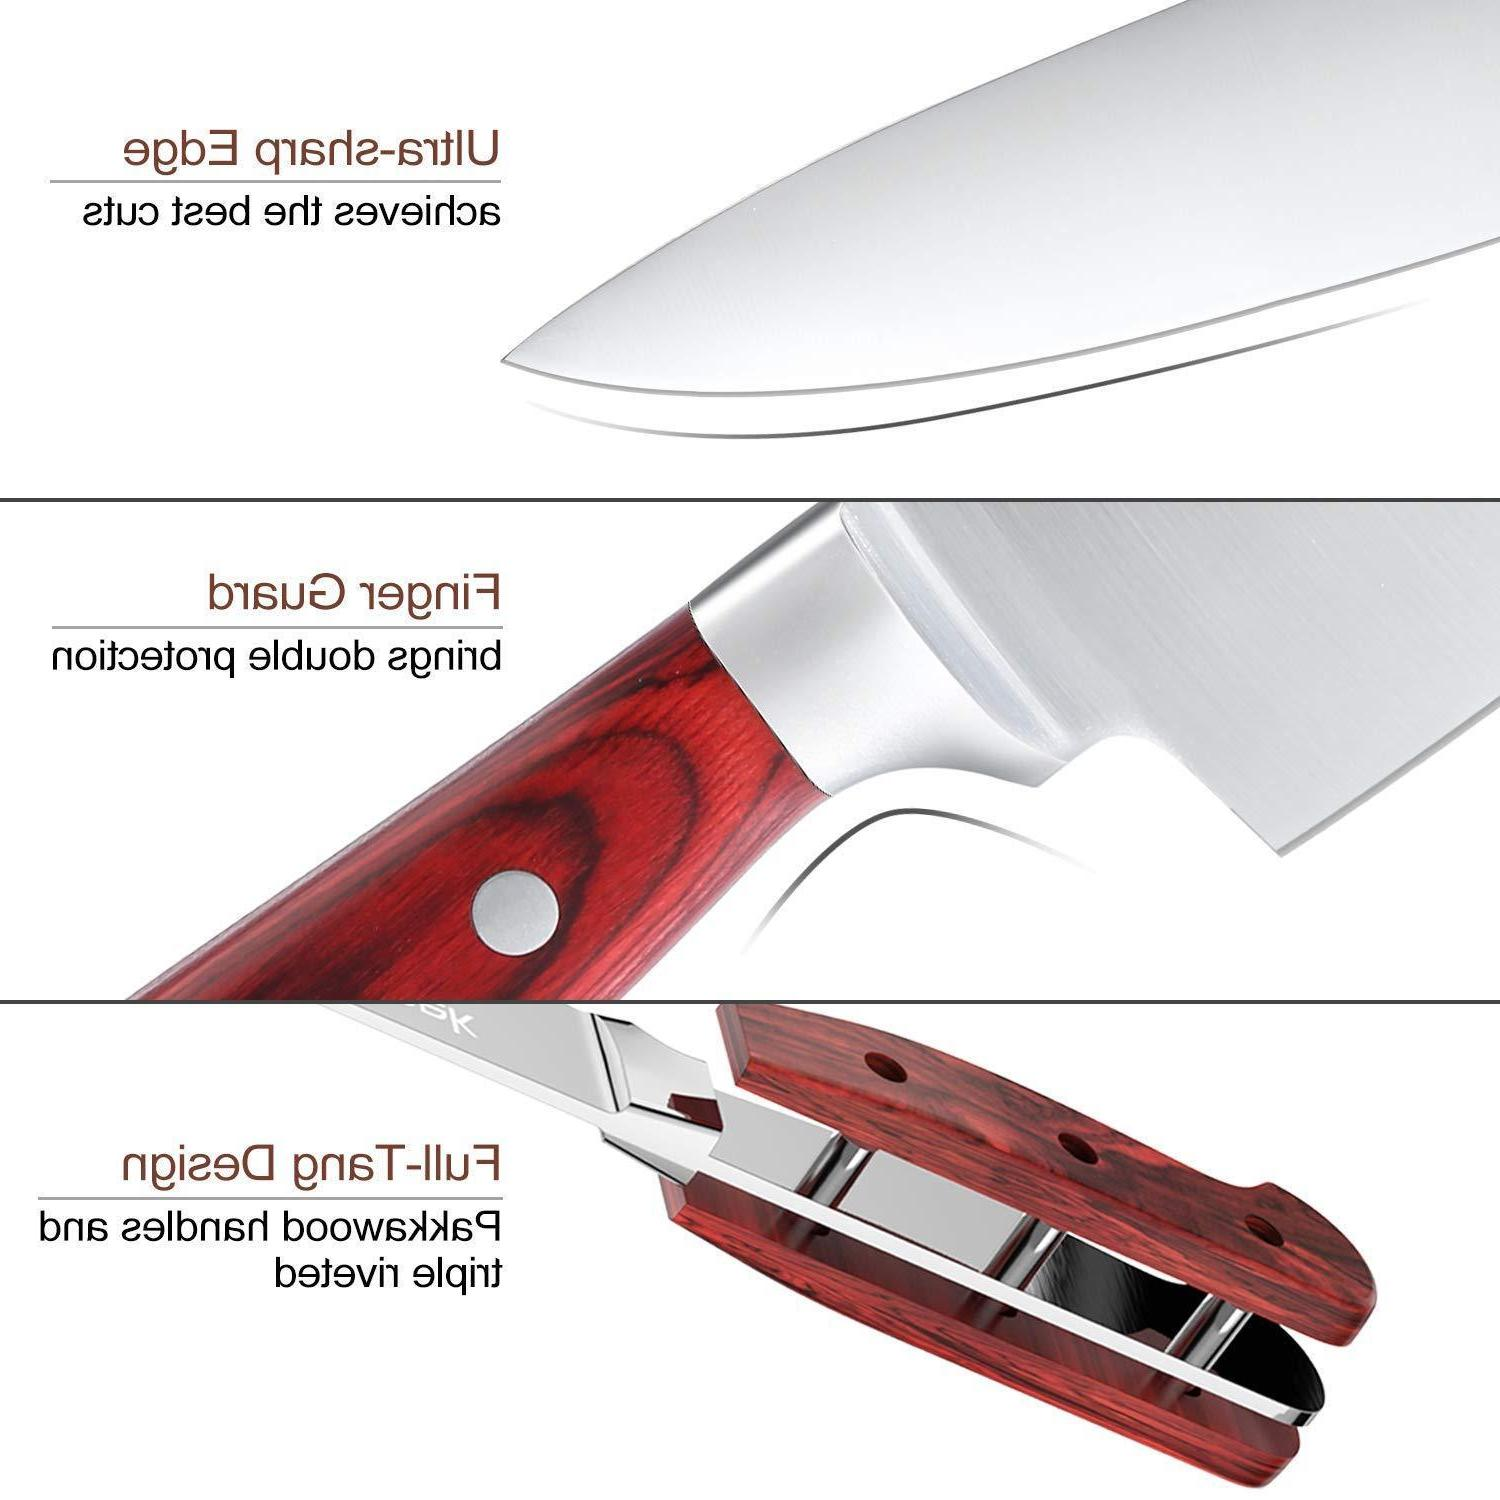 Knife 15-Piece Kitchen Knife Wooden Stainless